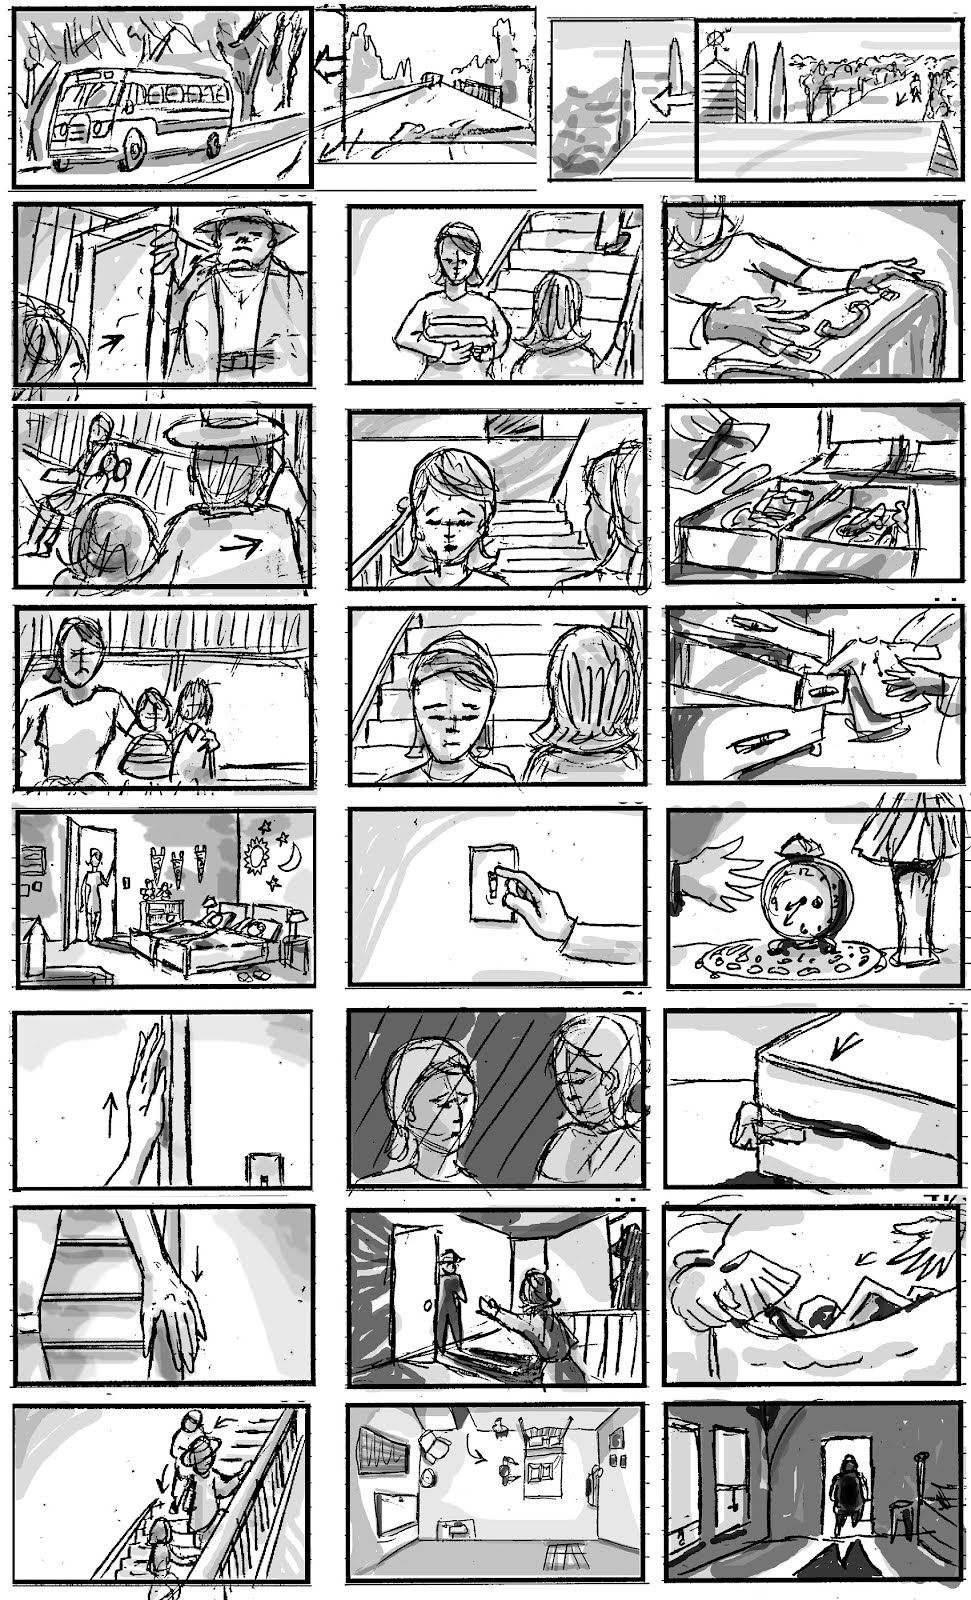 Van Dykes Storyboards Sketches Projects Storyboard Sample – Storyboard Sample